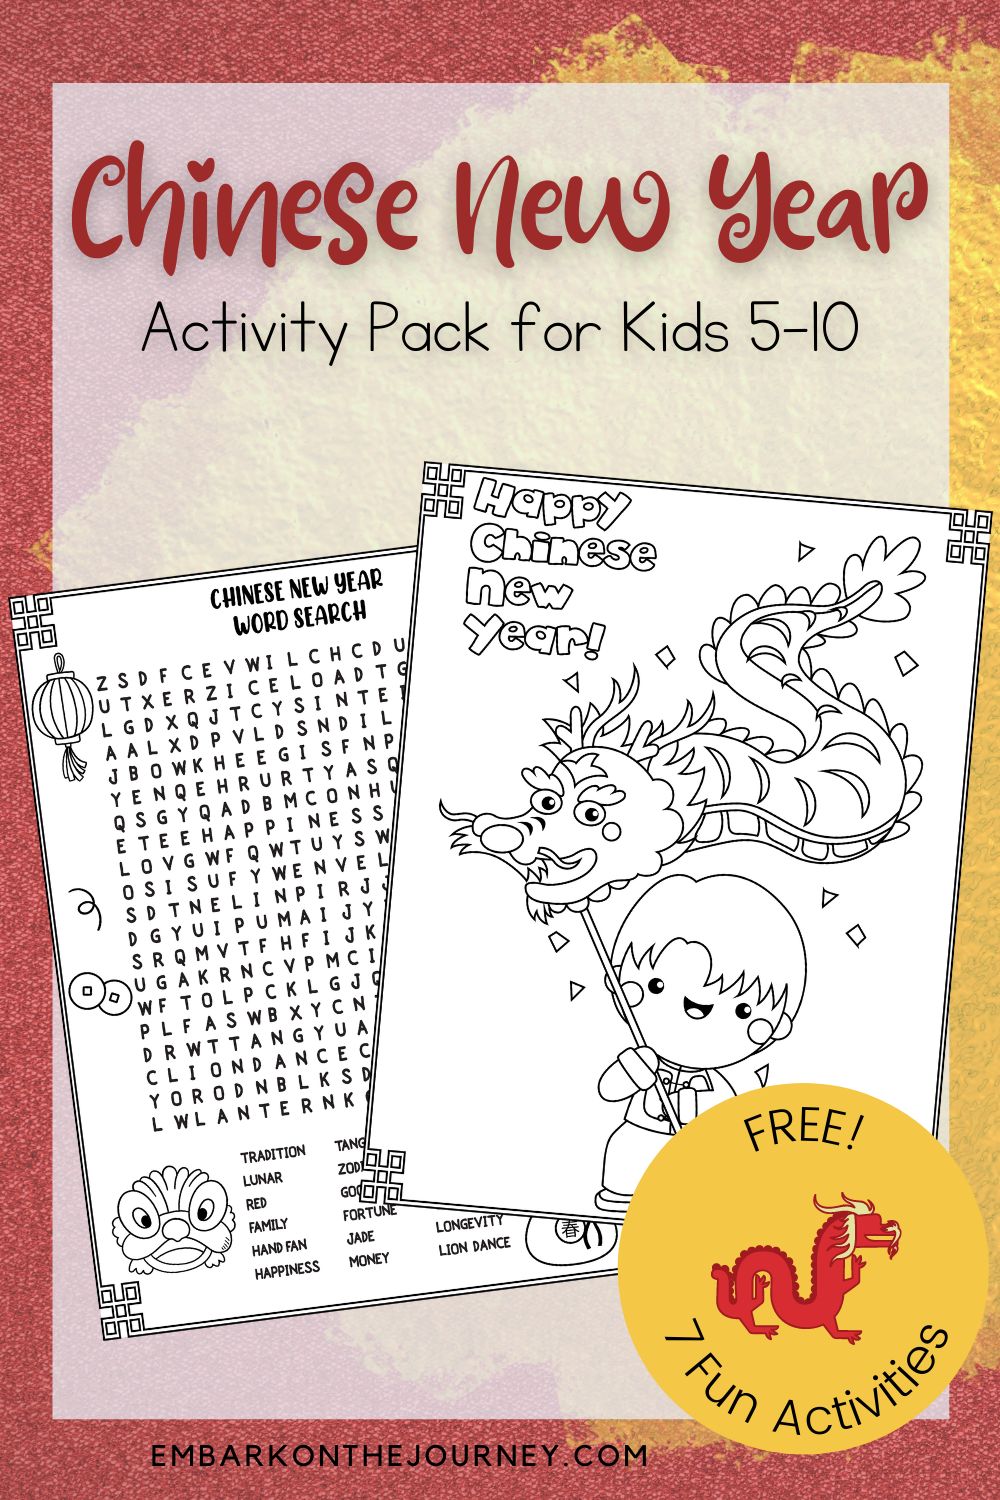 Printable Chinese New Year Worksheets For Kids In 2021 Chinese New Year Activities New Years Activities Chinese New Year [ 1500 x 1000 Pixel ]